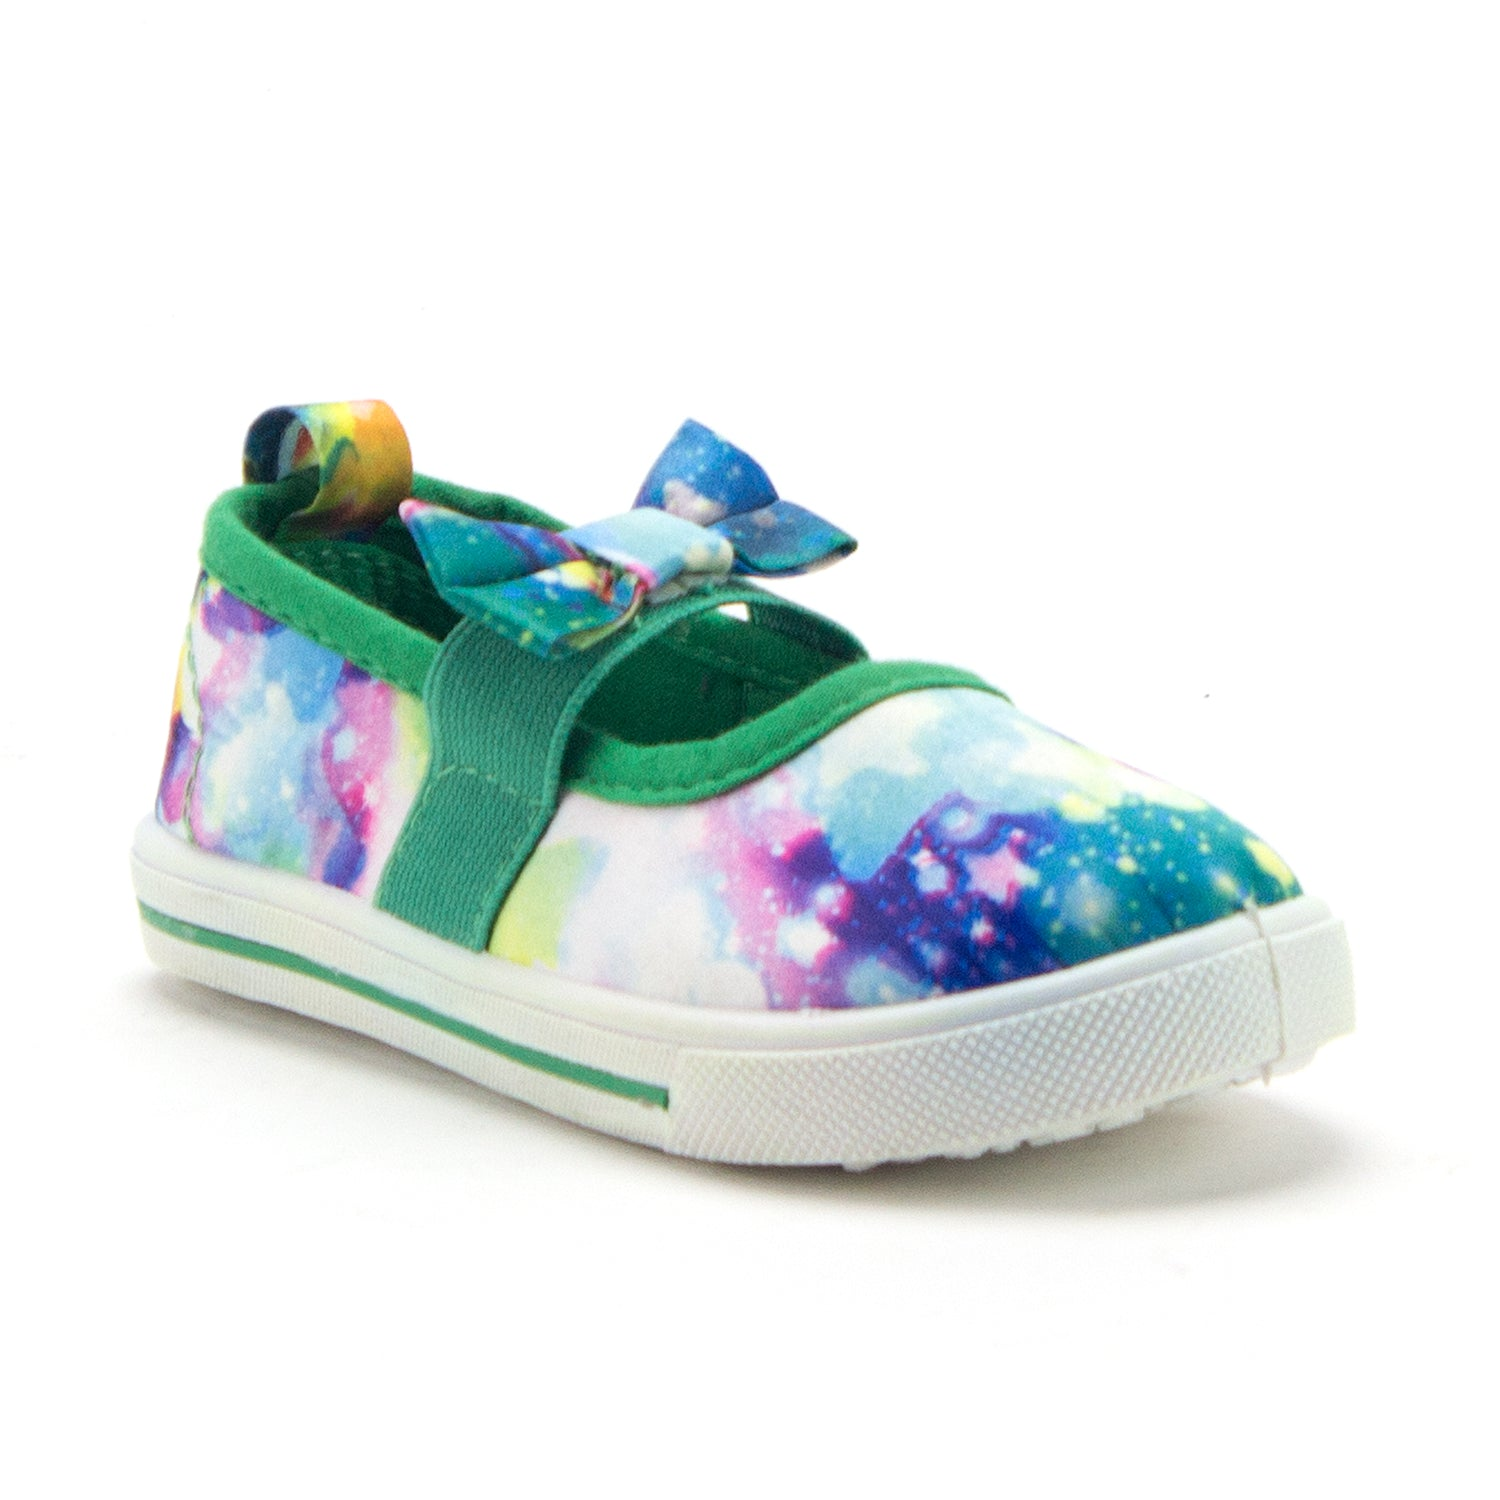 Girls Cay 02I Toddlers Classic Space Galaxy Flats Slip On Canvas Sneakers Shoes